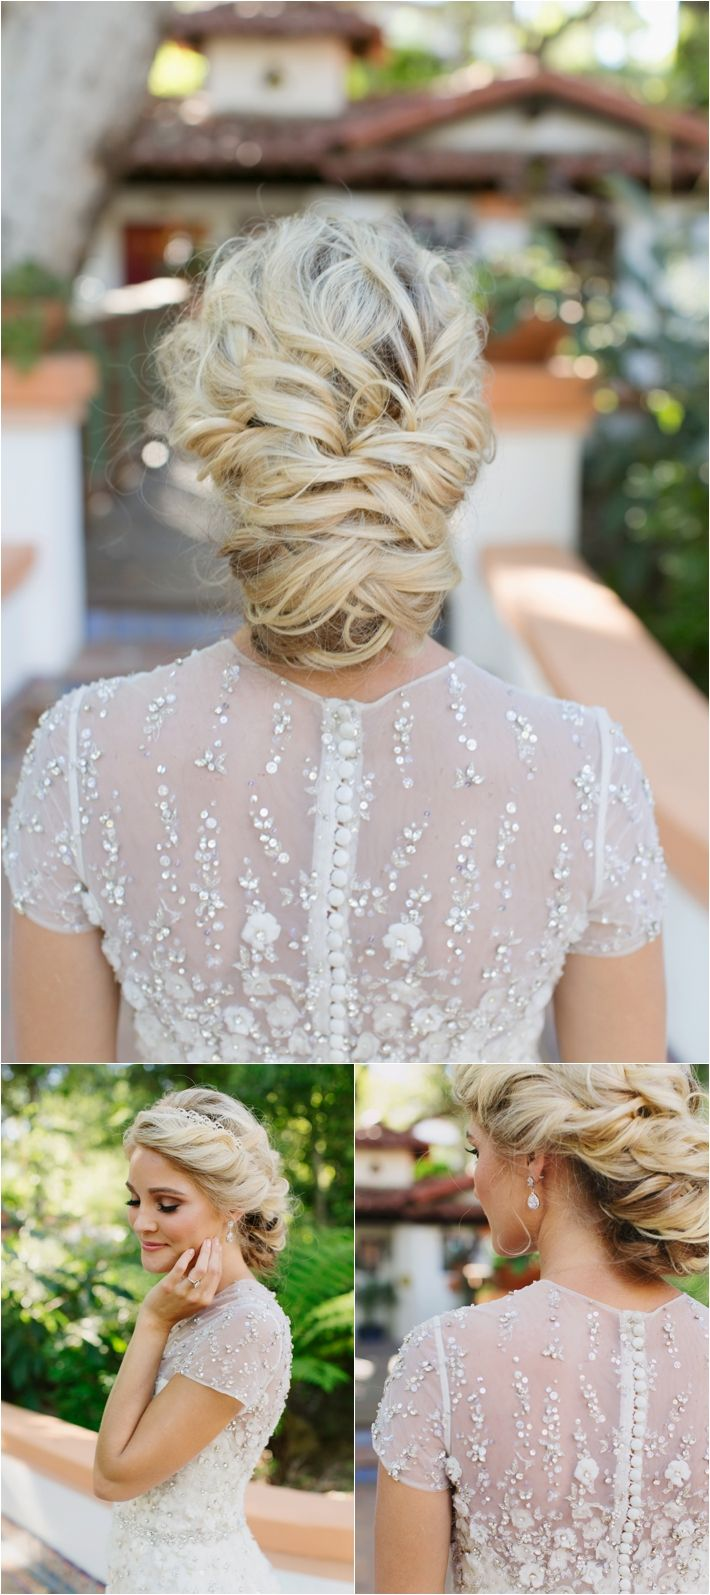 Loose texture wedding braid like updo | Rancho Las Lomas Wedding Inspiration by Damaris Mia Photography